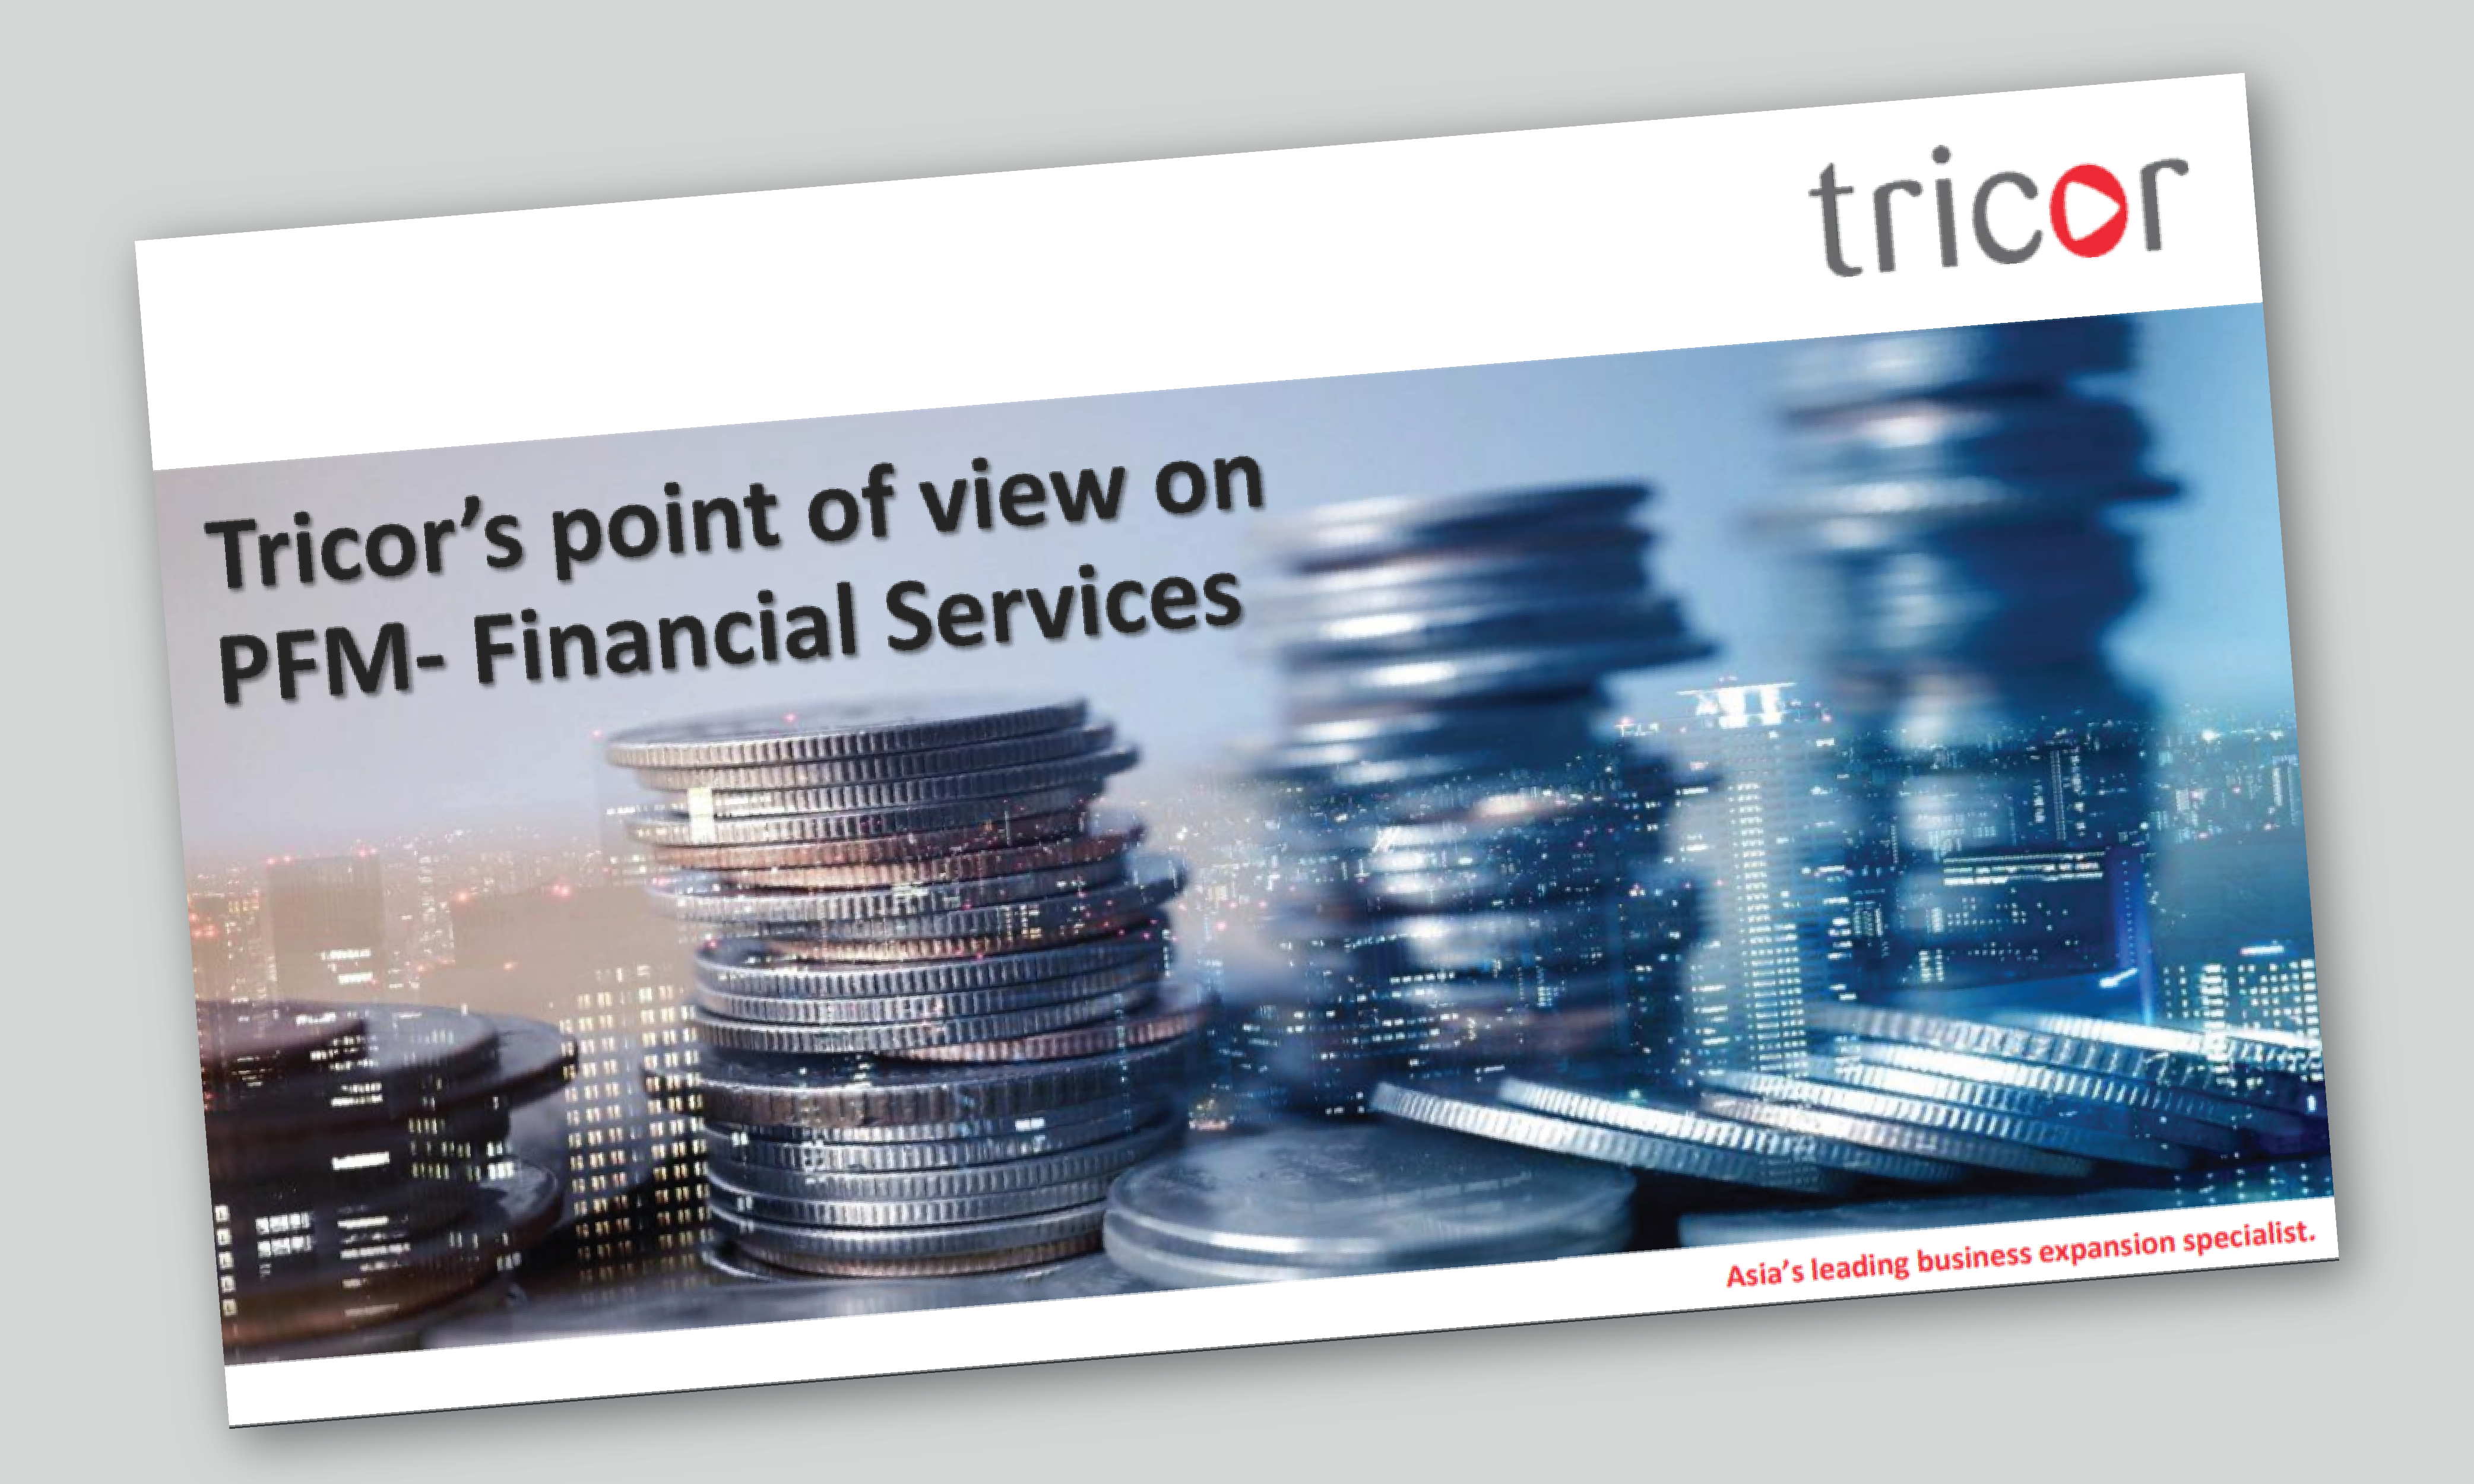 Tricor Point of View on PFM - Financial Services Presentation